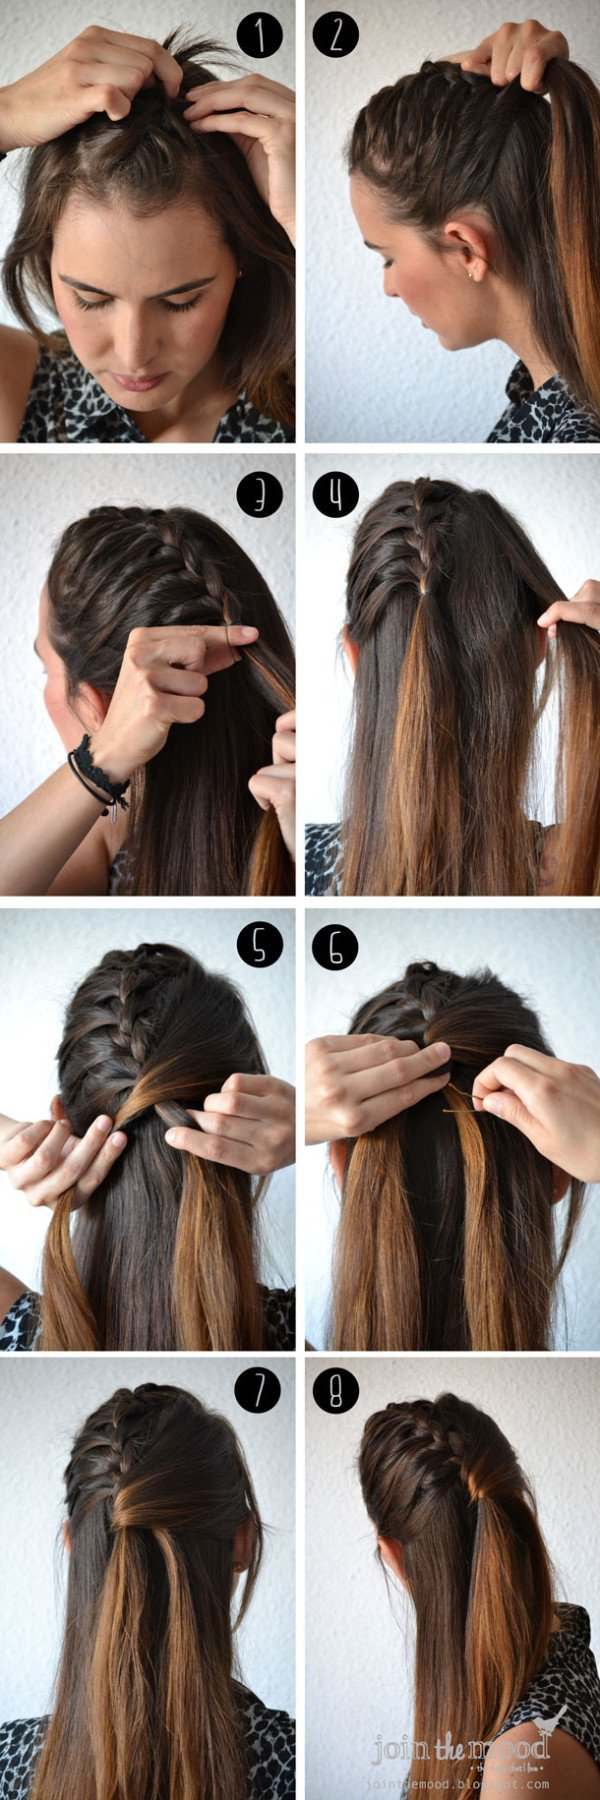 12 Amazing 2 Minute Hairstyles That Will Transform Your Morning Routine